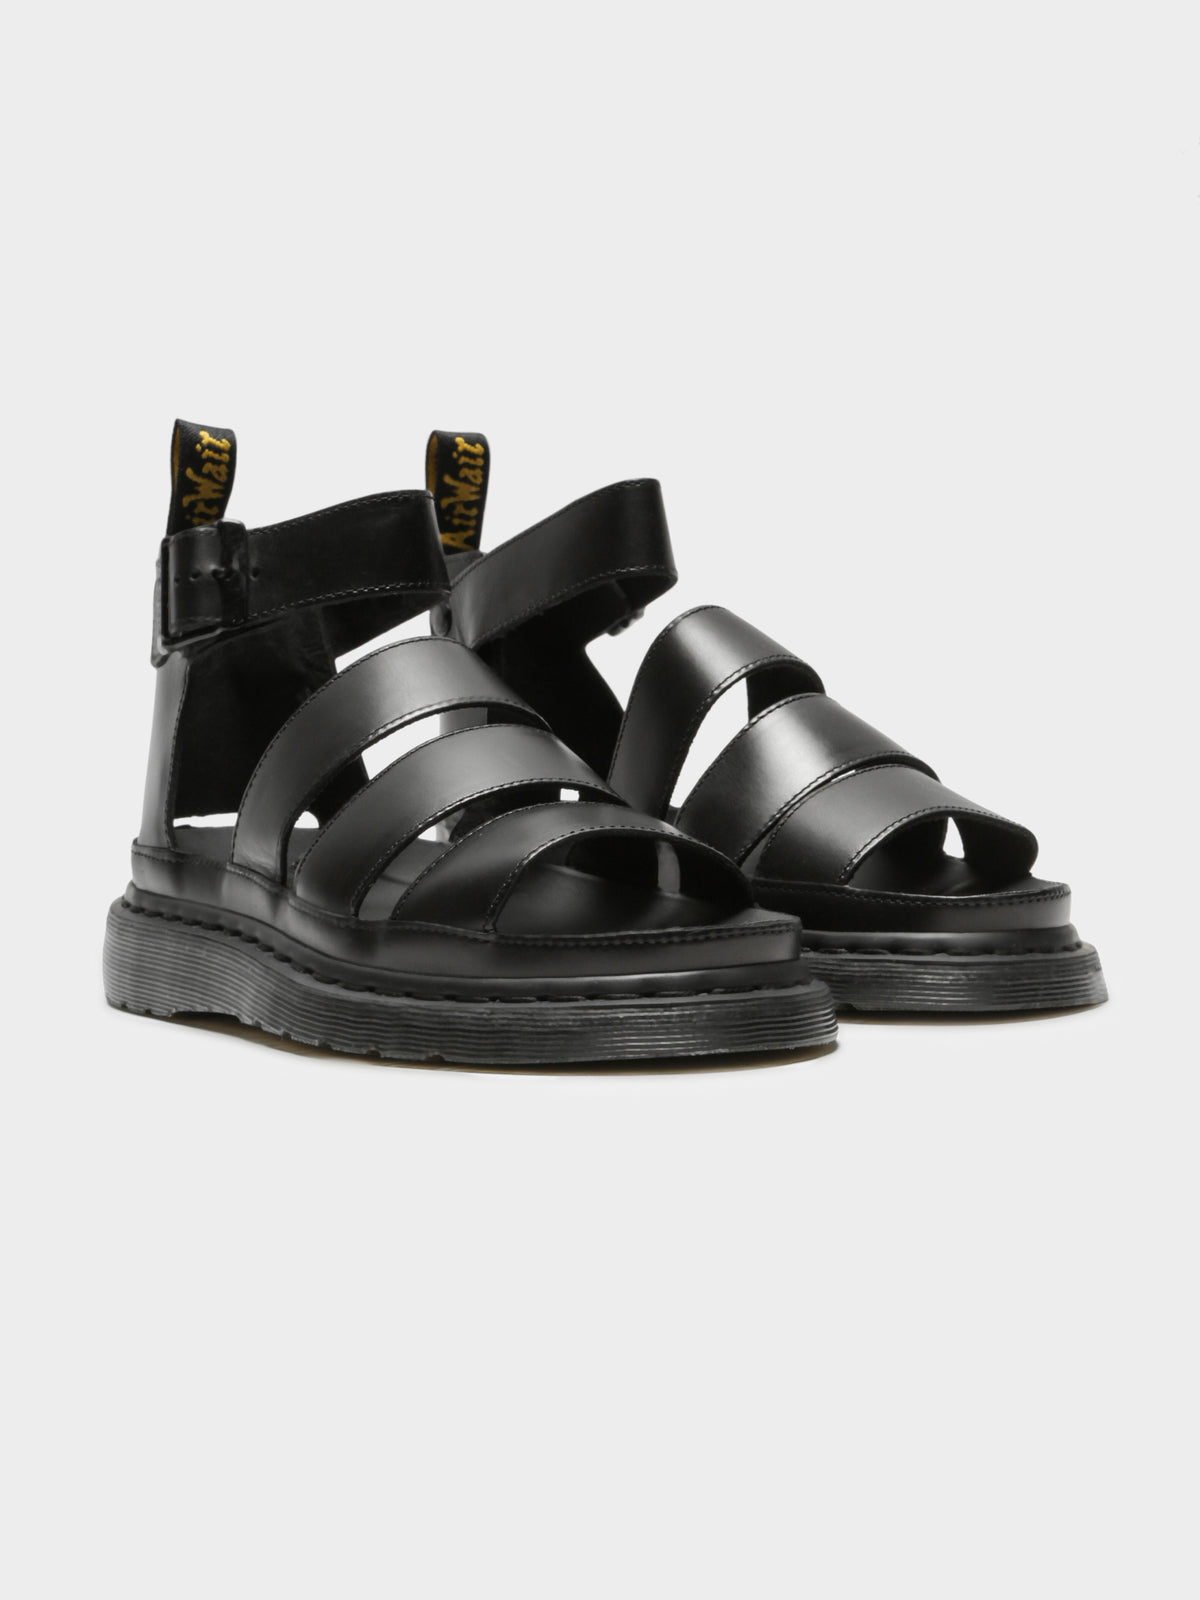 Clarissa II Brando Sandals in Black